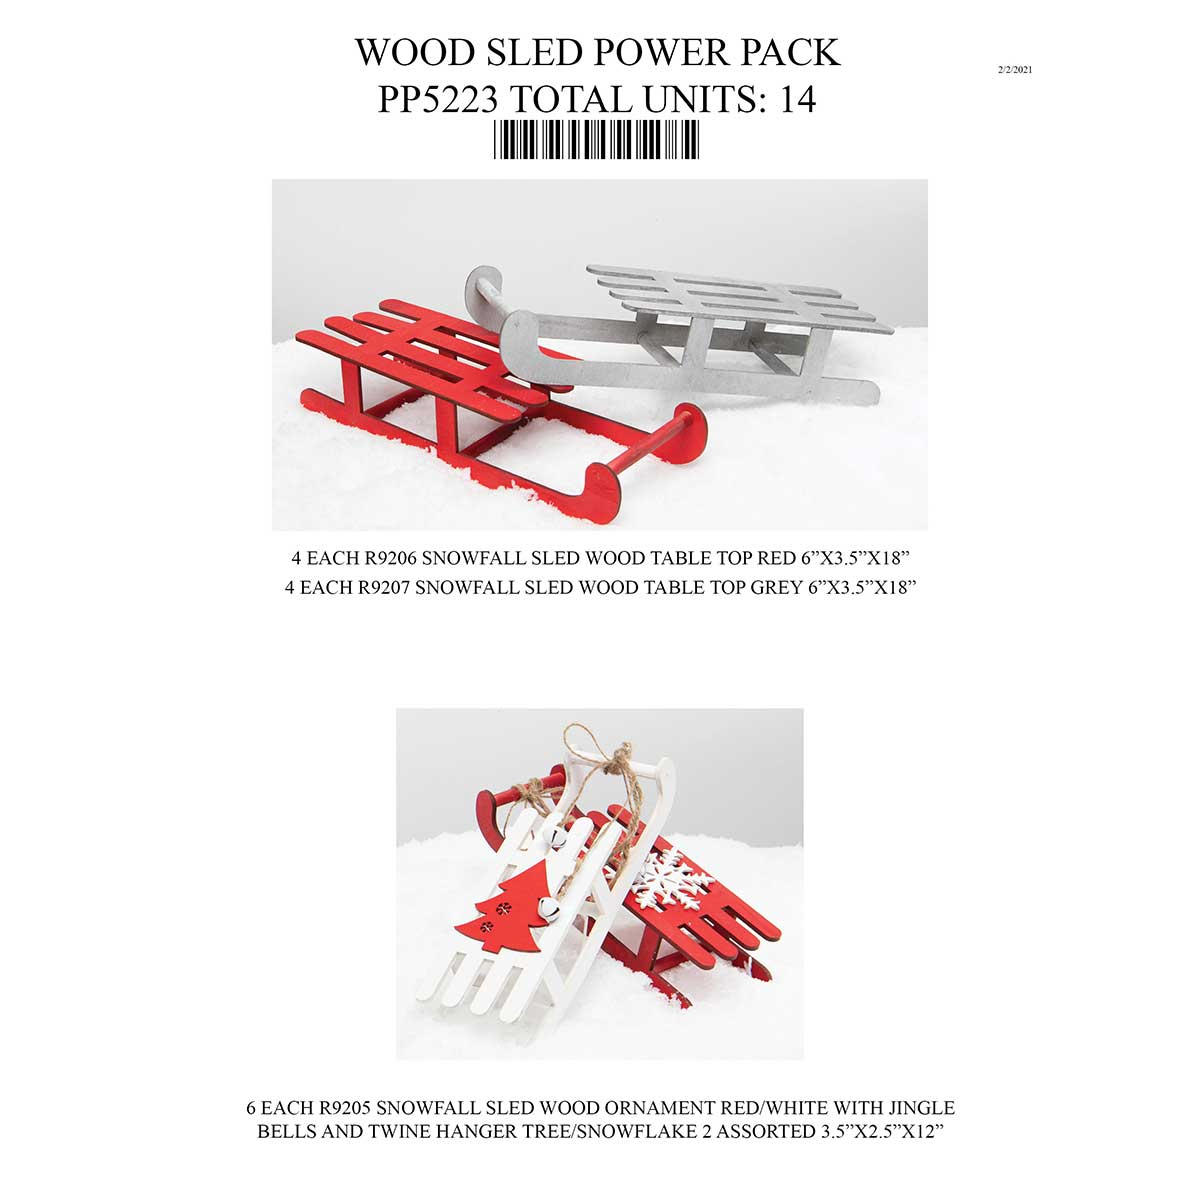 WOOD SLED POWER PACK 14 UNITS PP5223